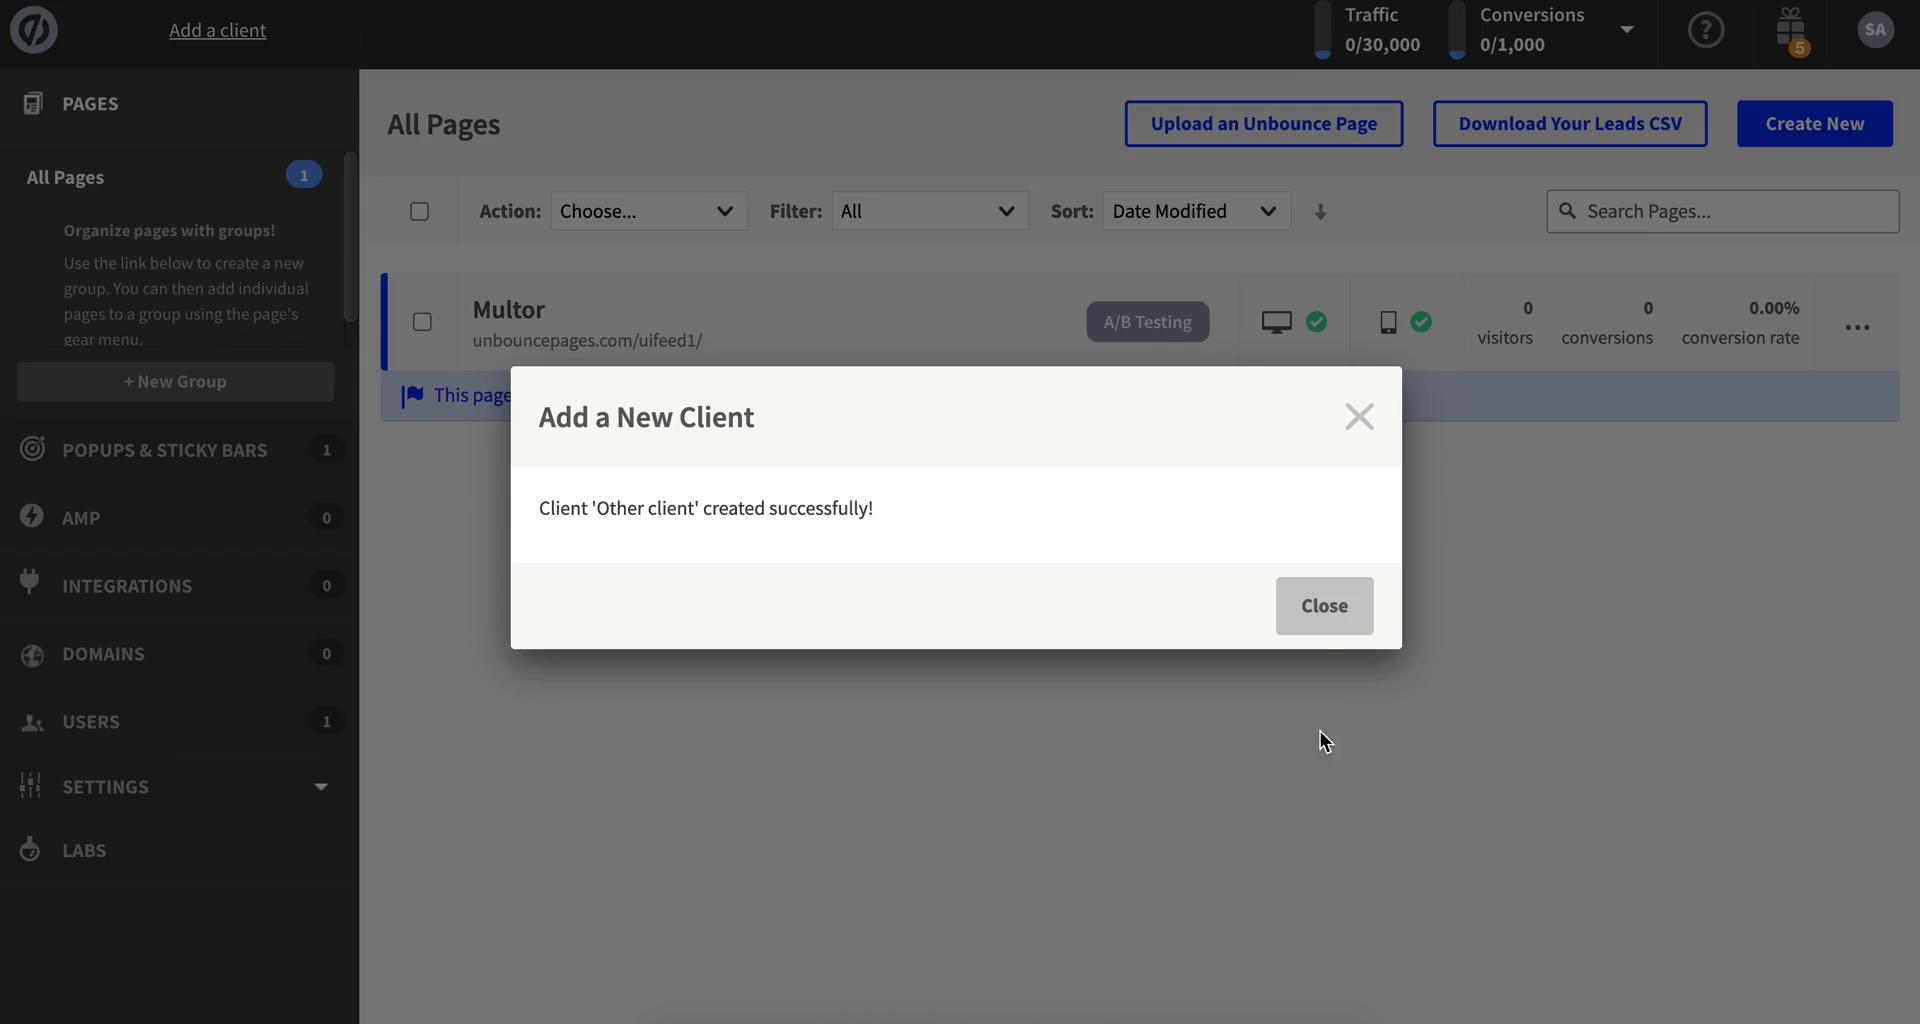 Screenshot of Client added during General browsing on Unbounce user flow